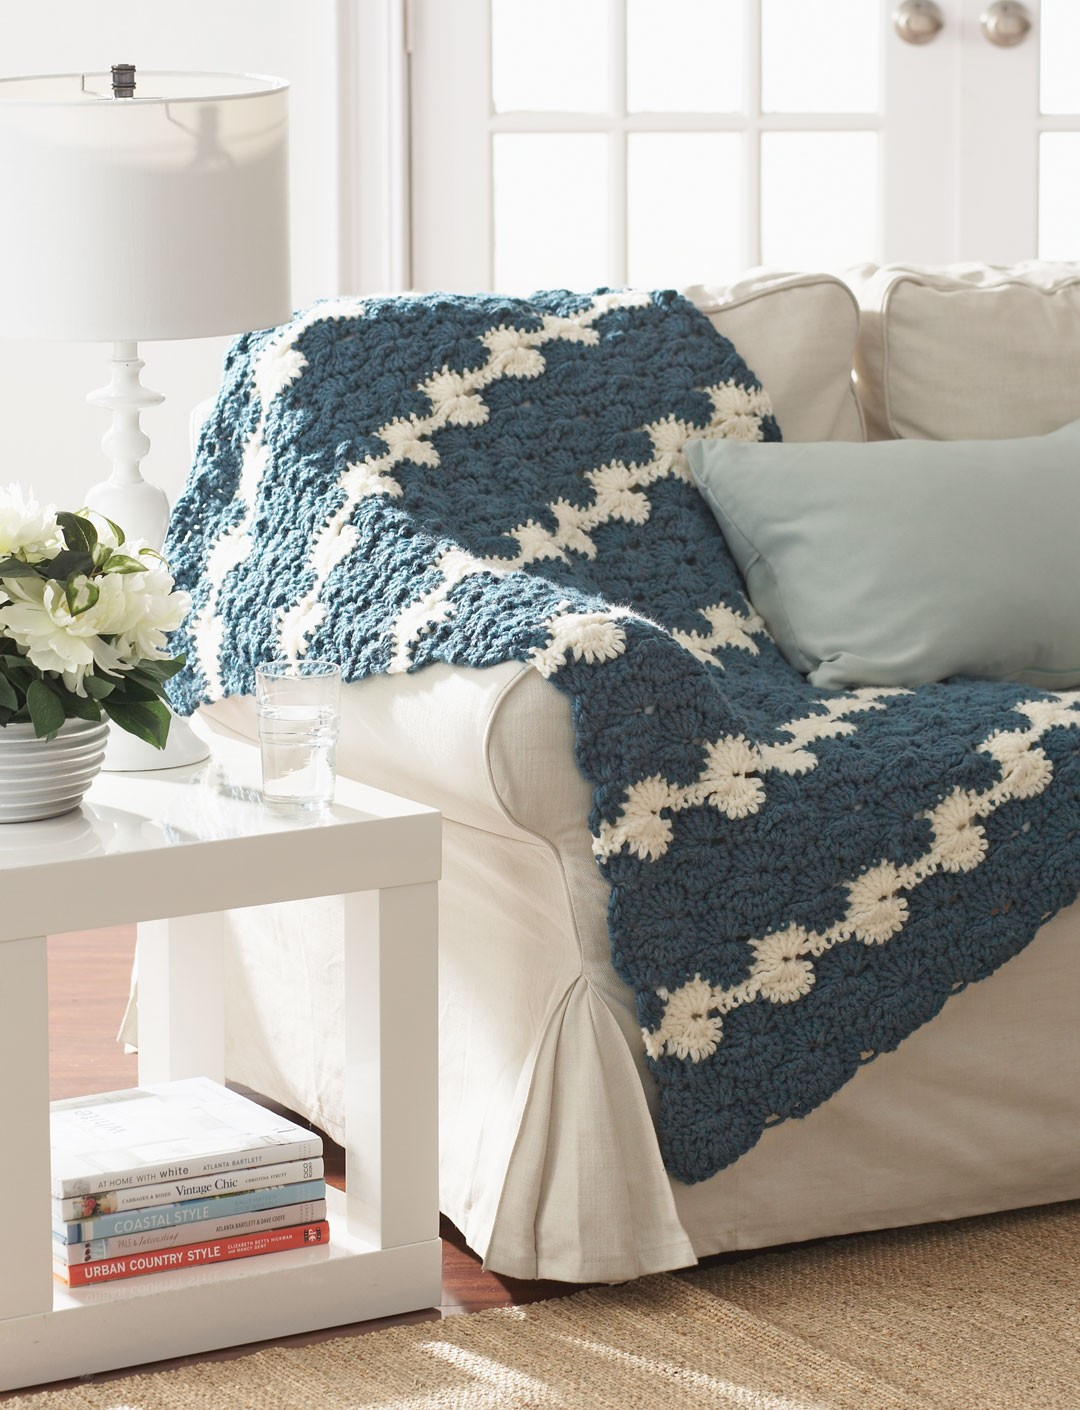 Free Crochet Pattern Lap Blanket : Bernat Gentle Waves Lap Blanket, Crochet Pattern ...